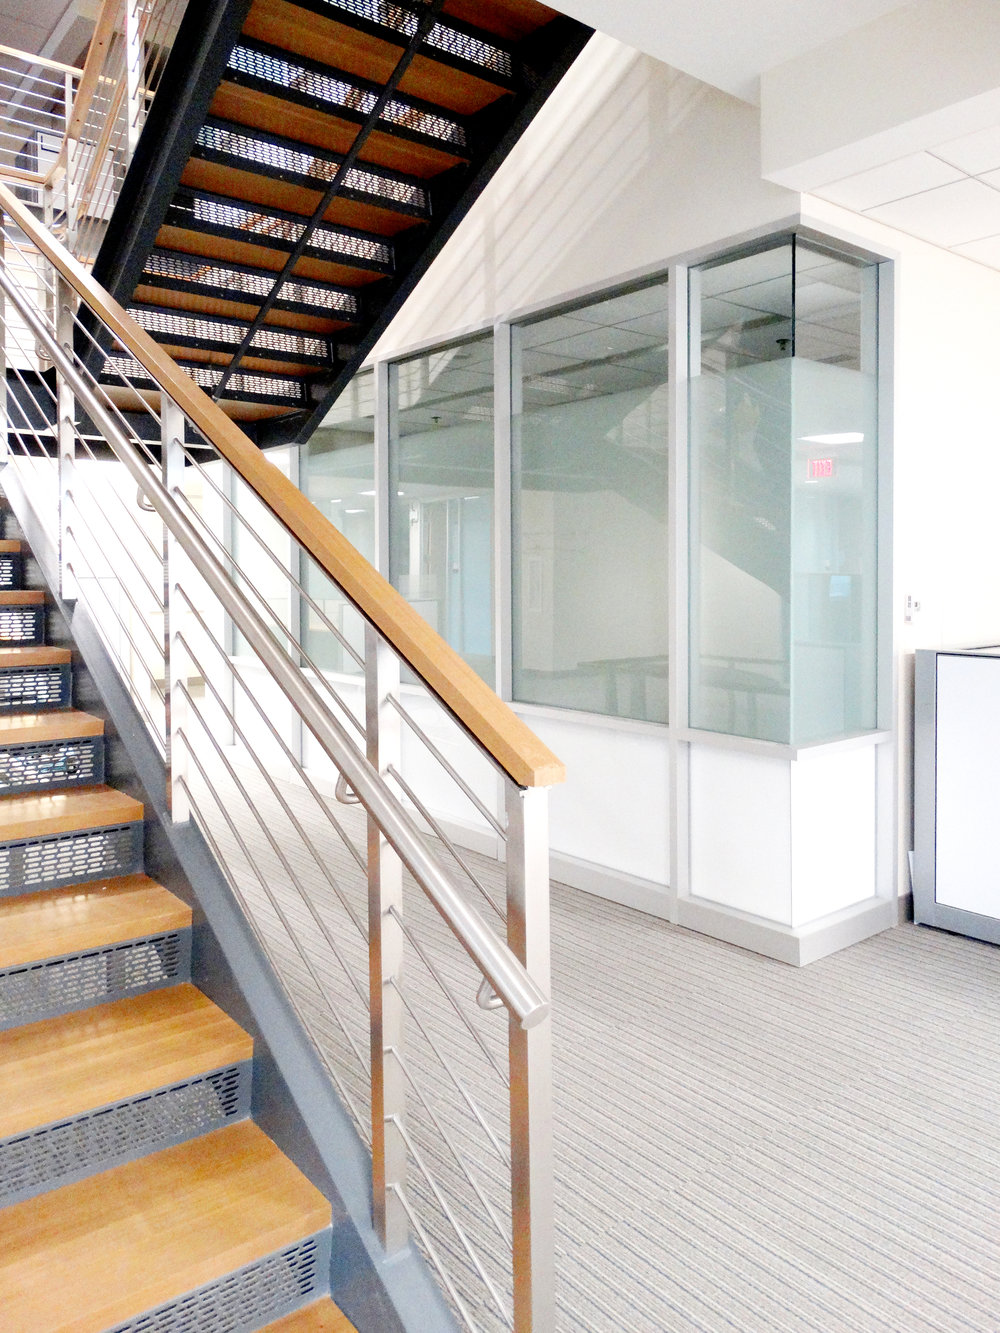 Encase Specialty Glass Wall System - Spaceworks AI.jpg